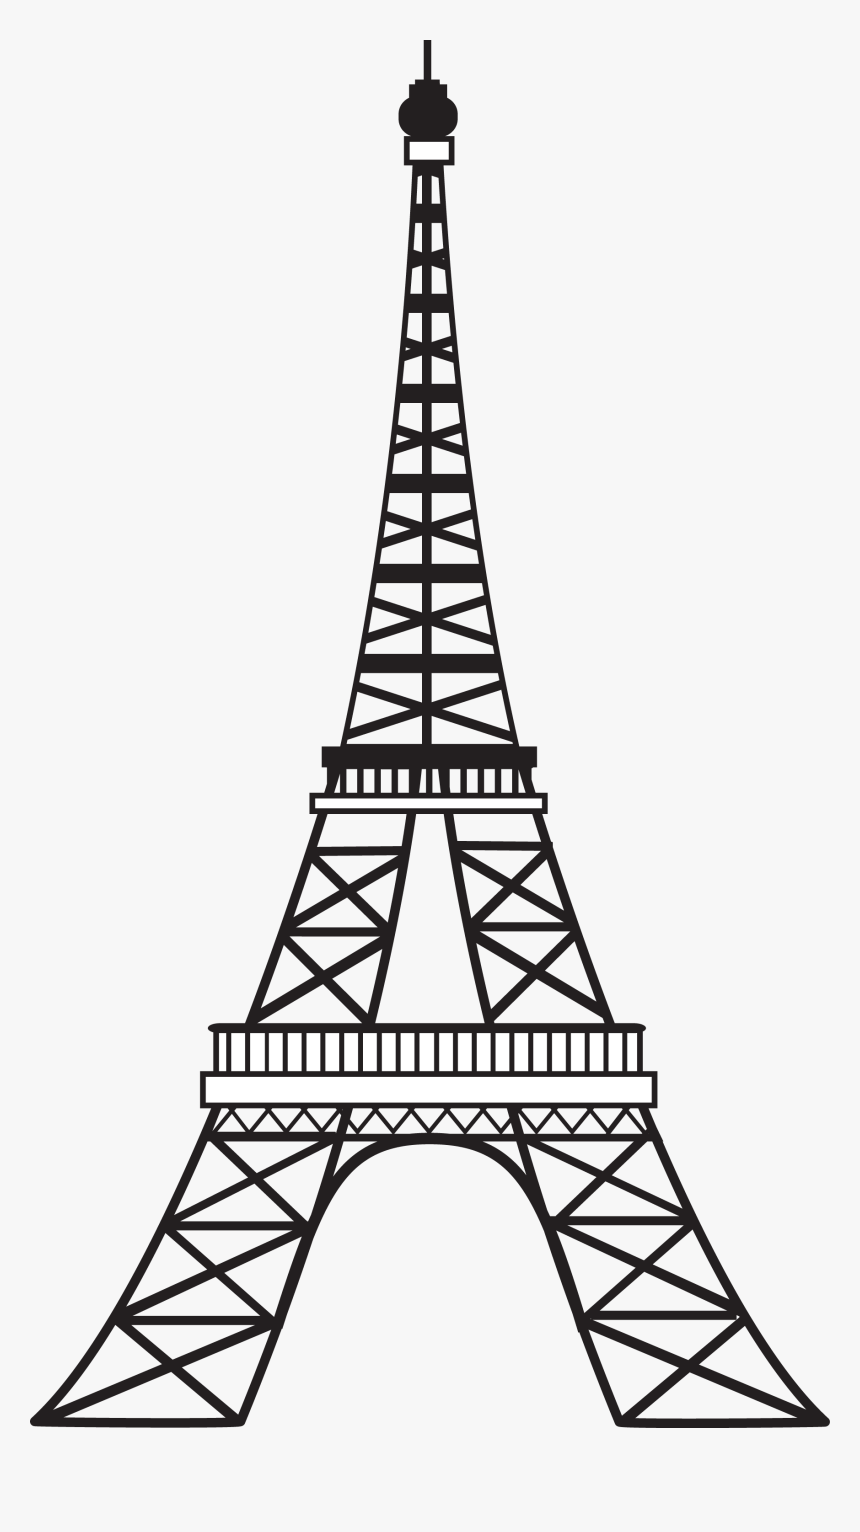 Simple Eiffel Tower Drawing : simple, eiffel, tower, drawing, Transparent, Tumblr, Images, Simple, Eiffel, Tower, Outline,, Download, Kindpng